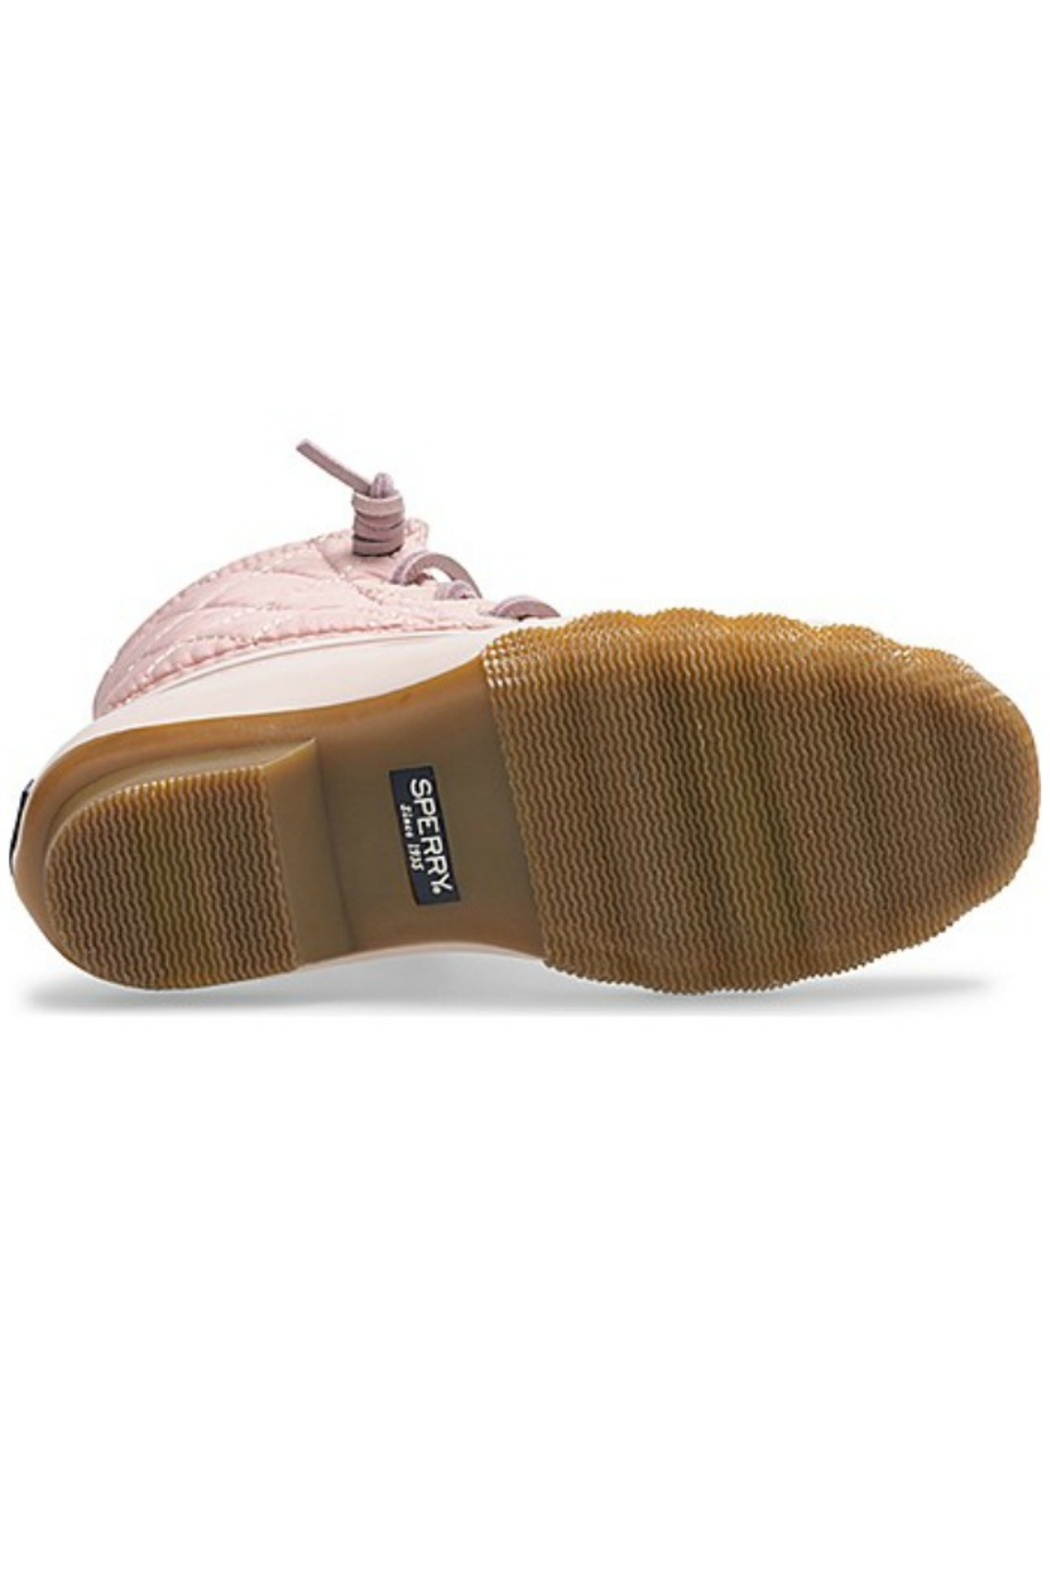 Sperry Big Kid's Saltwater Boot in Blush - Back Cropped Image